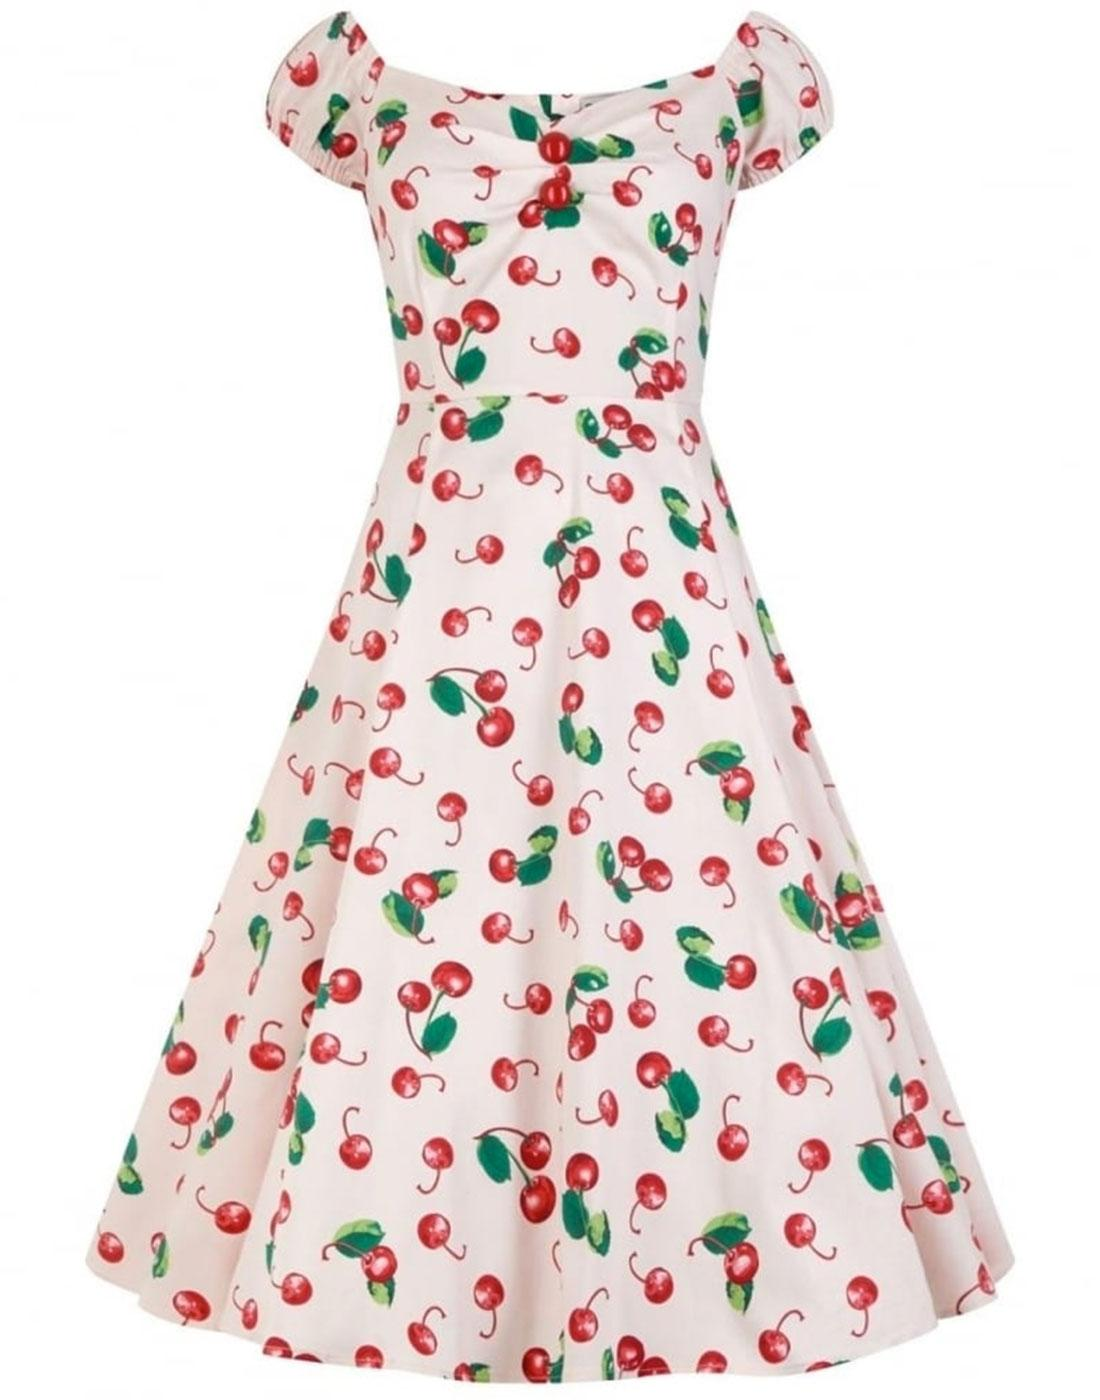 Dolores COLLECTIF Cherry Print Doll Dress Ivory